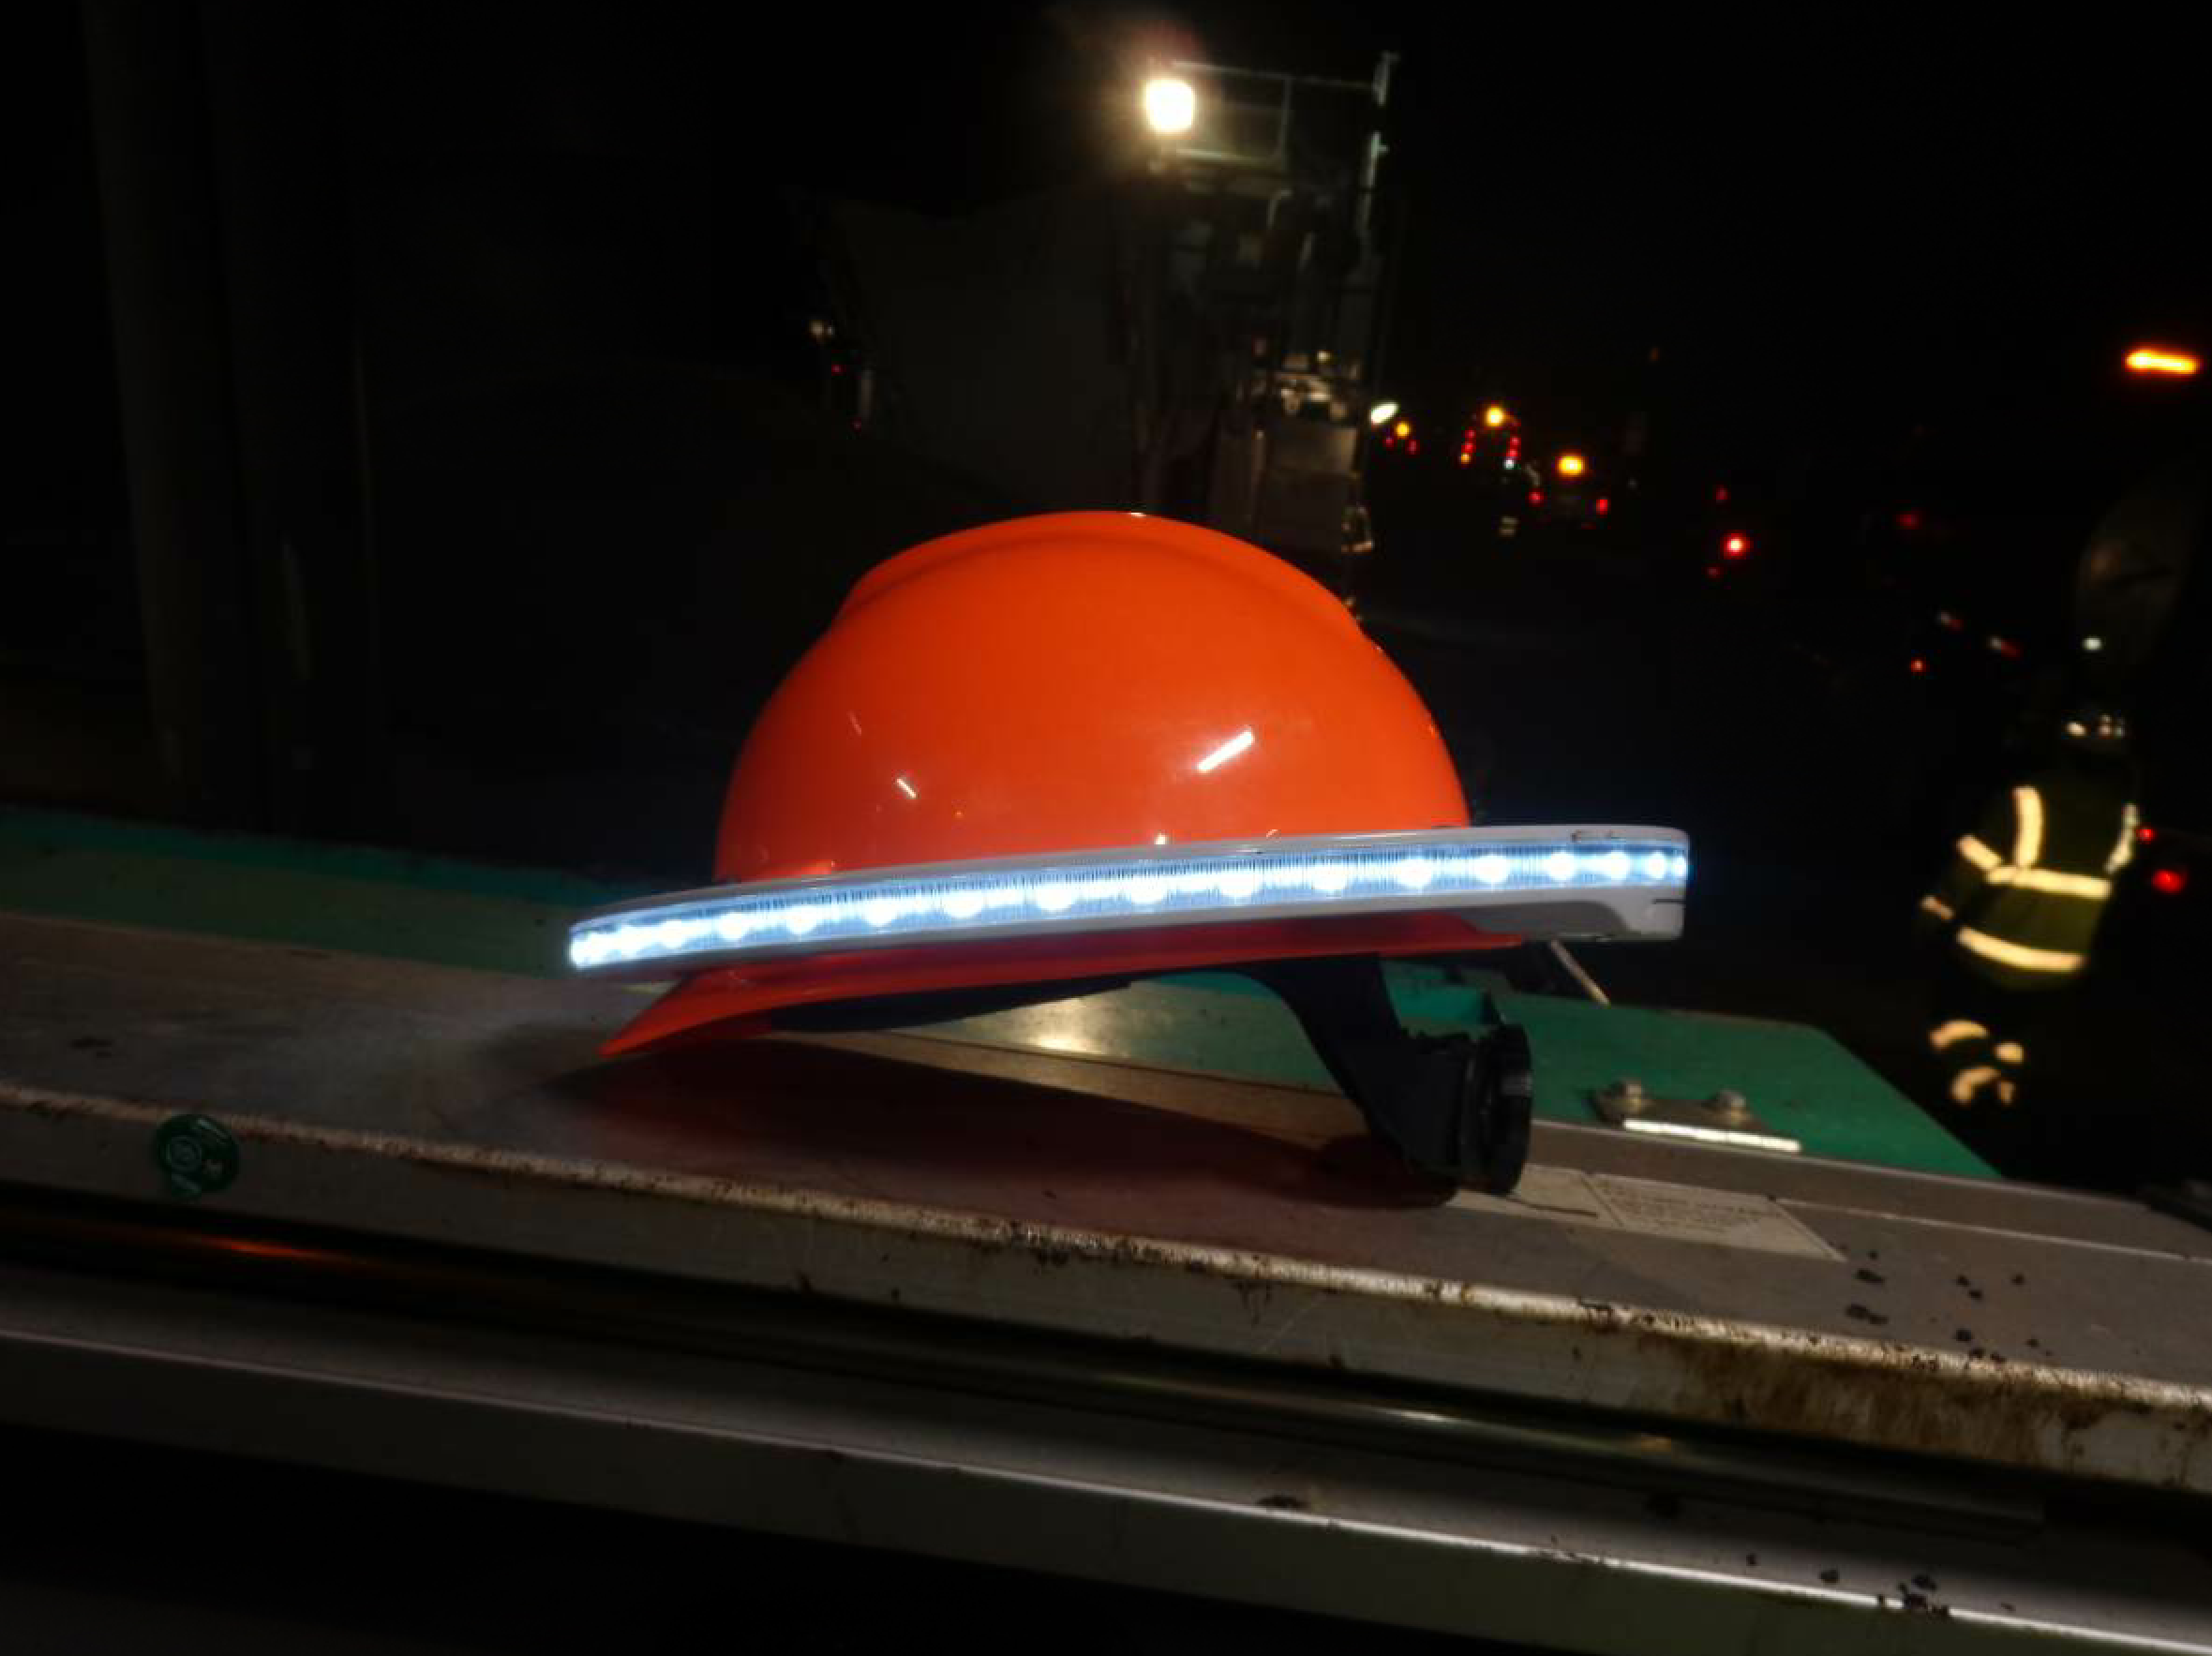 As we've reported in the magazine before, the Halo Light attaches to a standard hard hat, creating an extra ring of visibility for the worker.